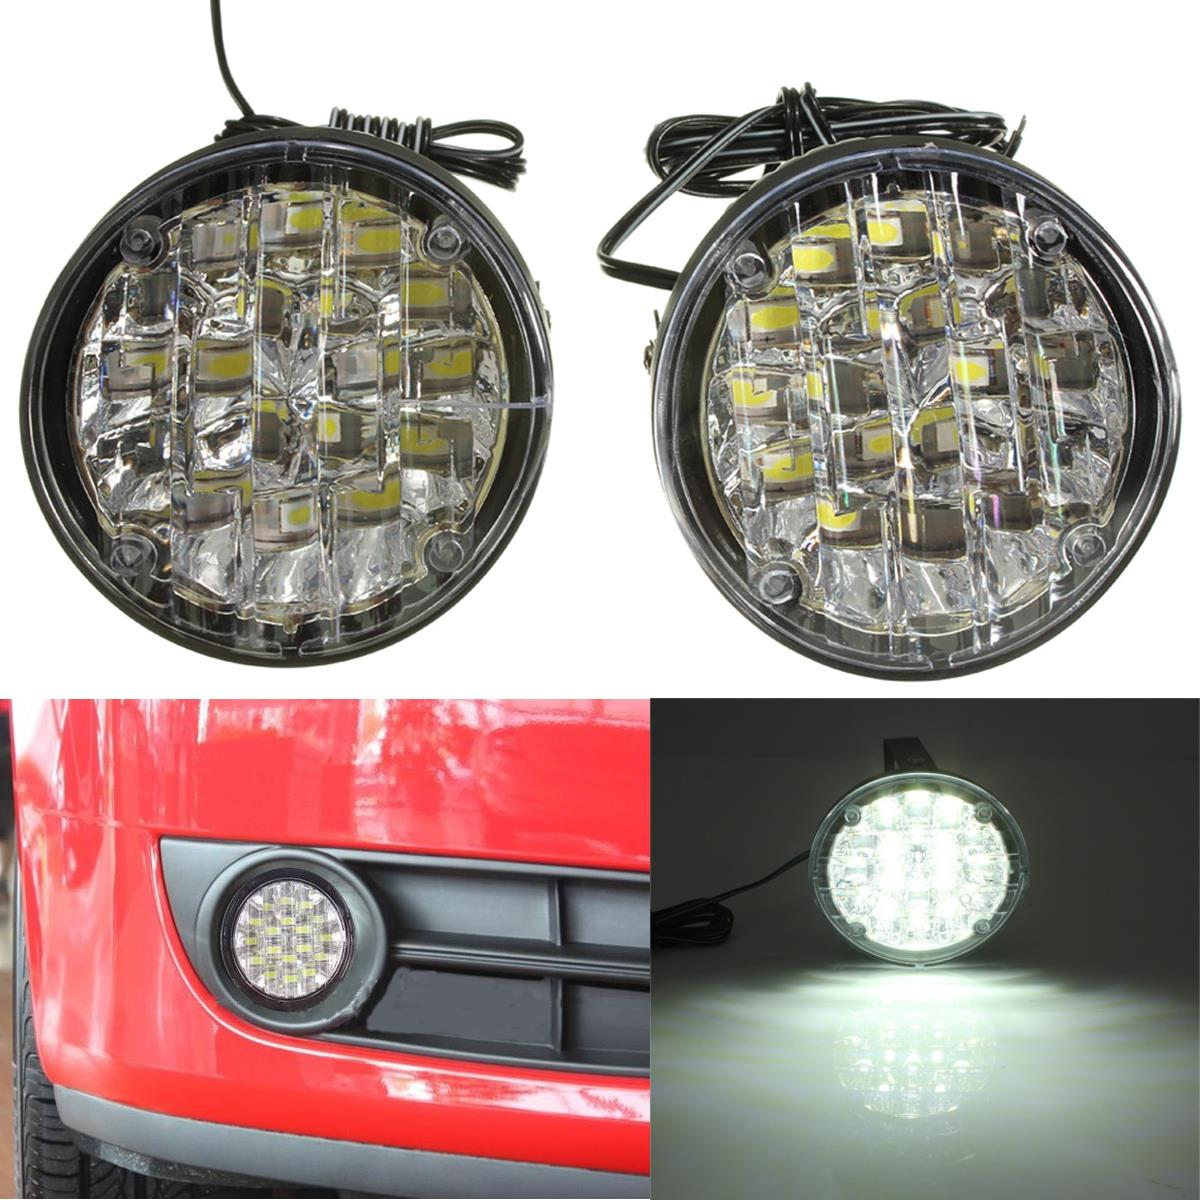 New 2Pcs 12V 18 LED Round Car Driving Daytime Running Light DRL Fog Lamp Bright White Car LED Offroad Work Light 2017 2pcs new high quality 6 led daytime driving running light drl car fog lamp waterproof white dc 12v hot sale